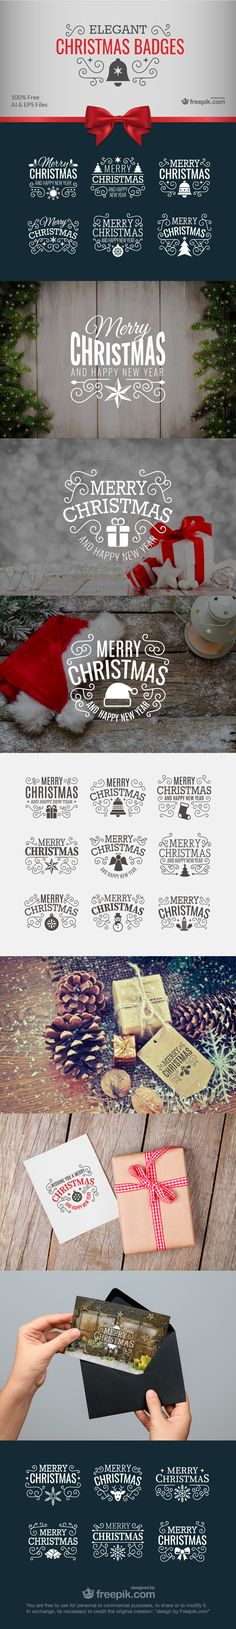 Free elegant Christmas badges: Download now!